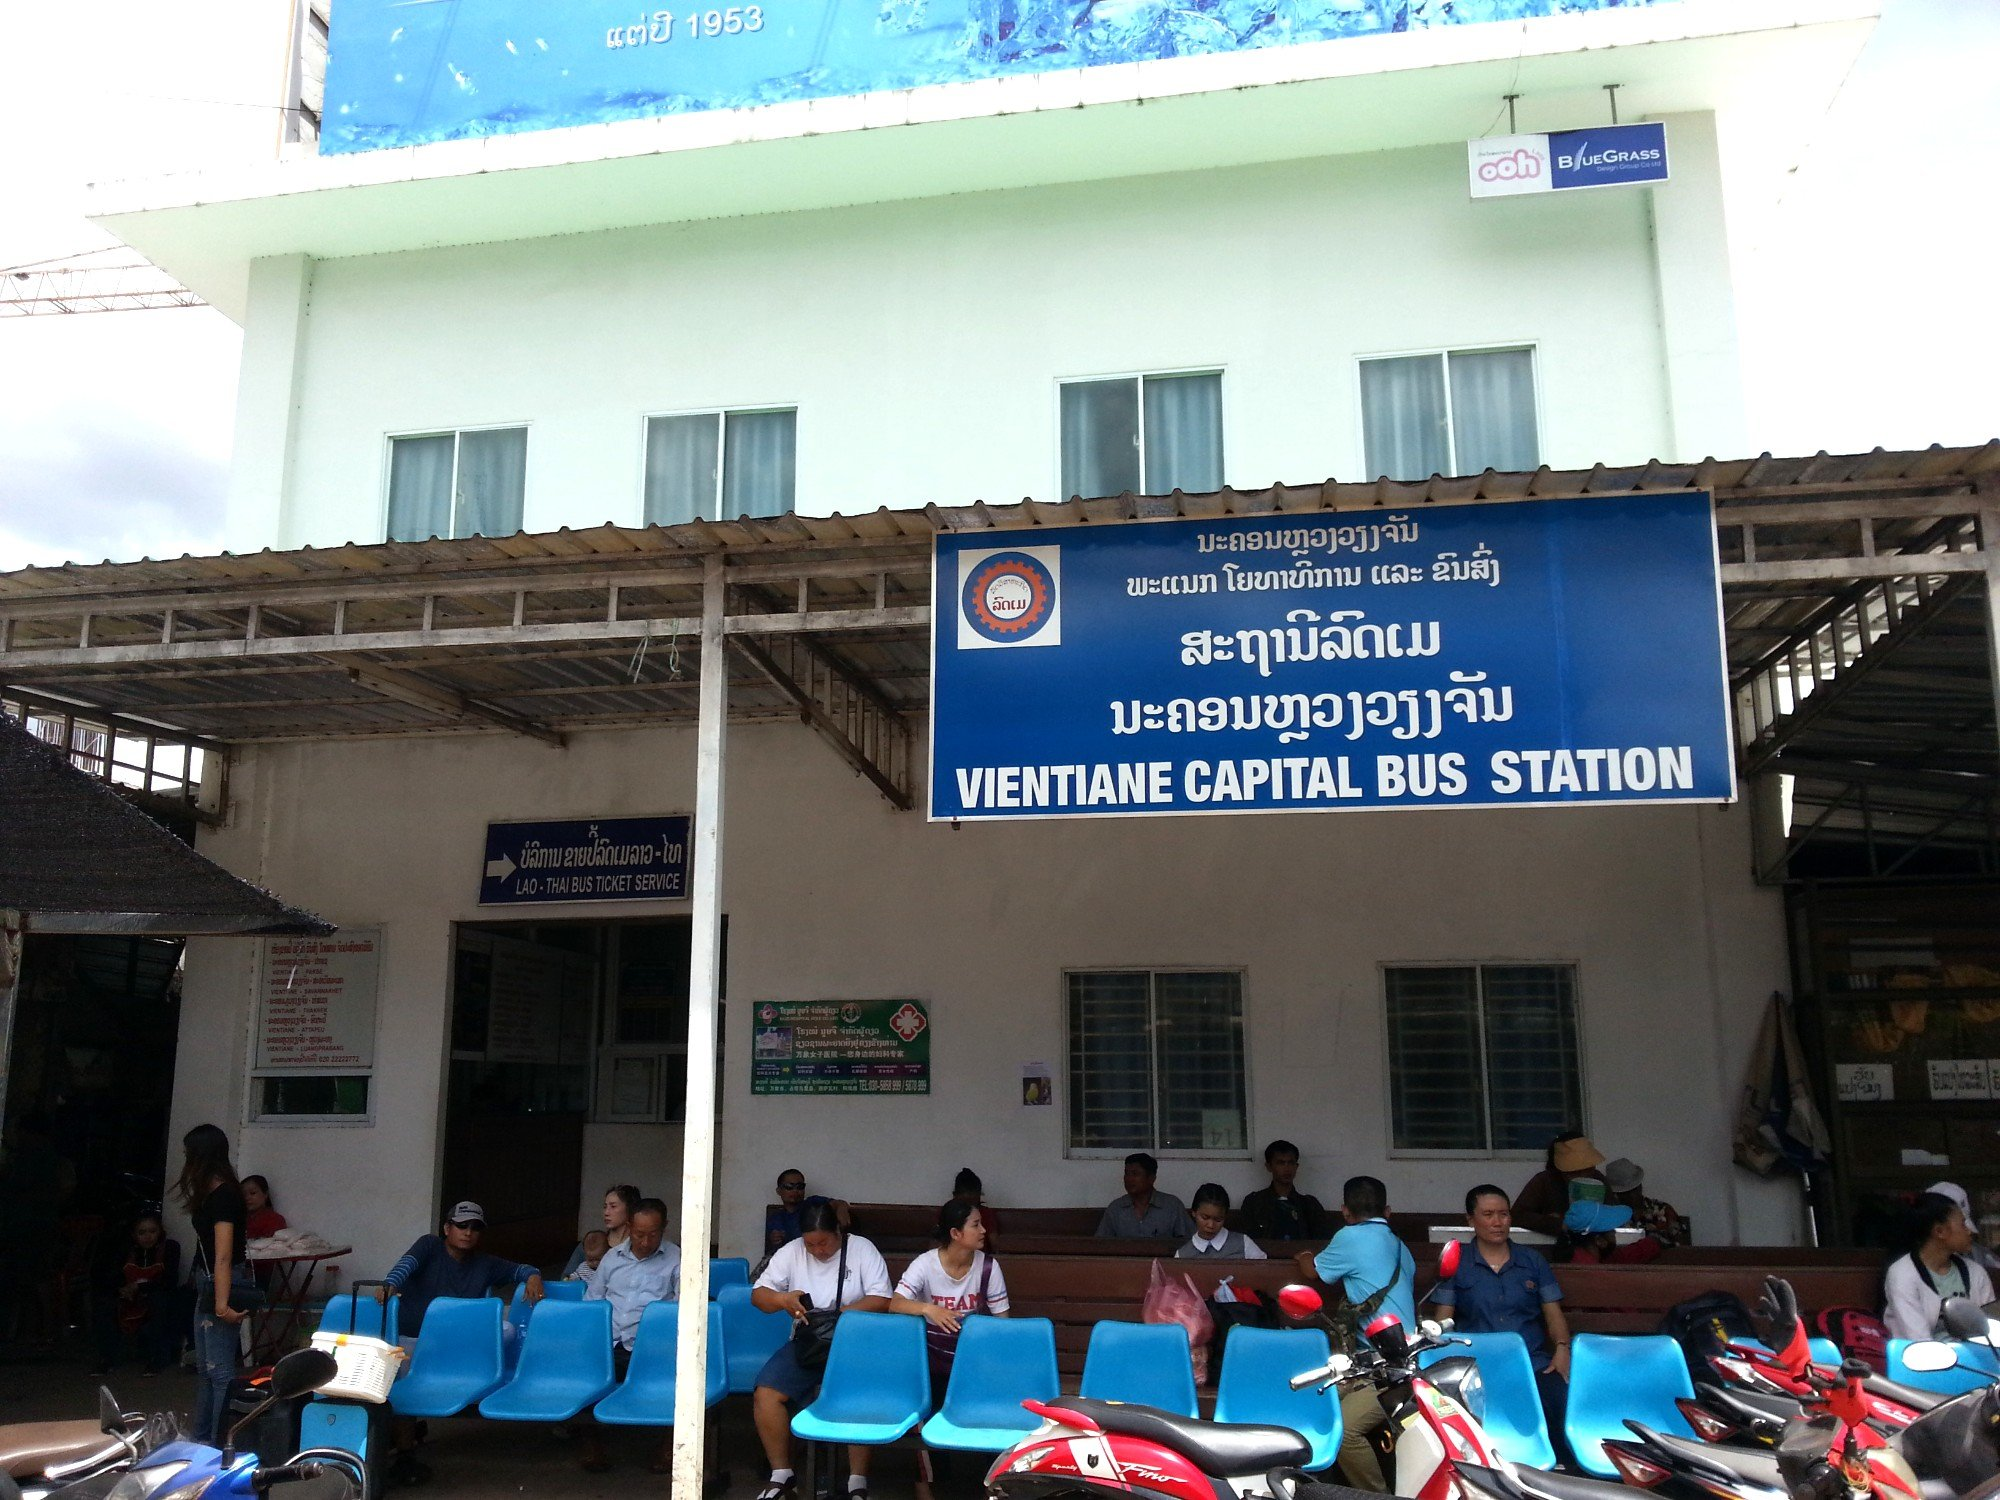 Vientiane Central Bus Station